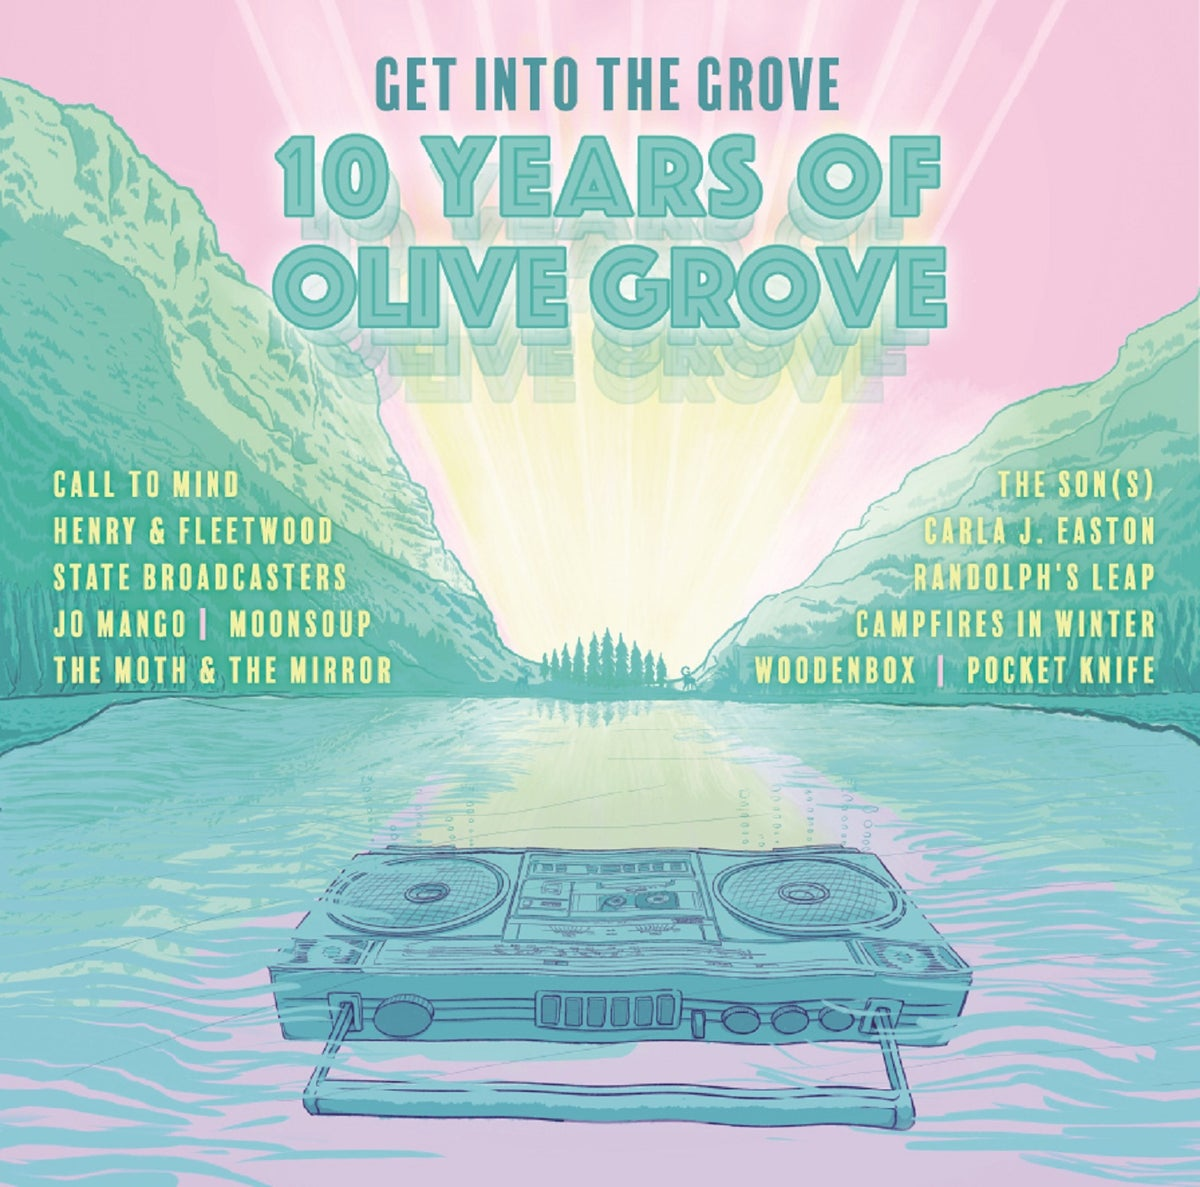 Get Into The Grove: 10 Years of Olive Grove